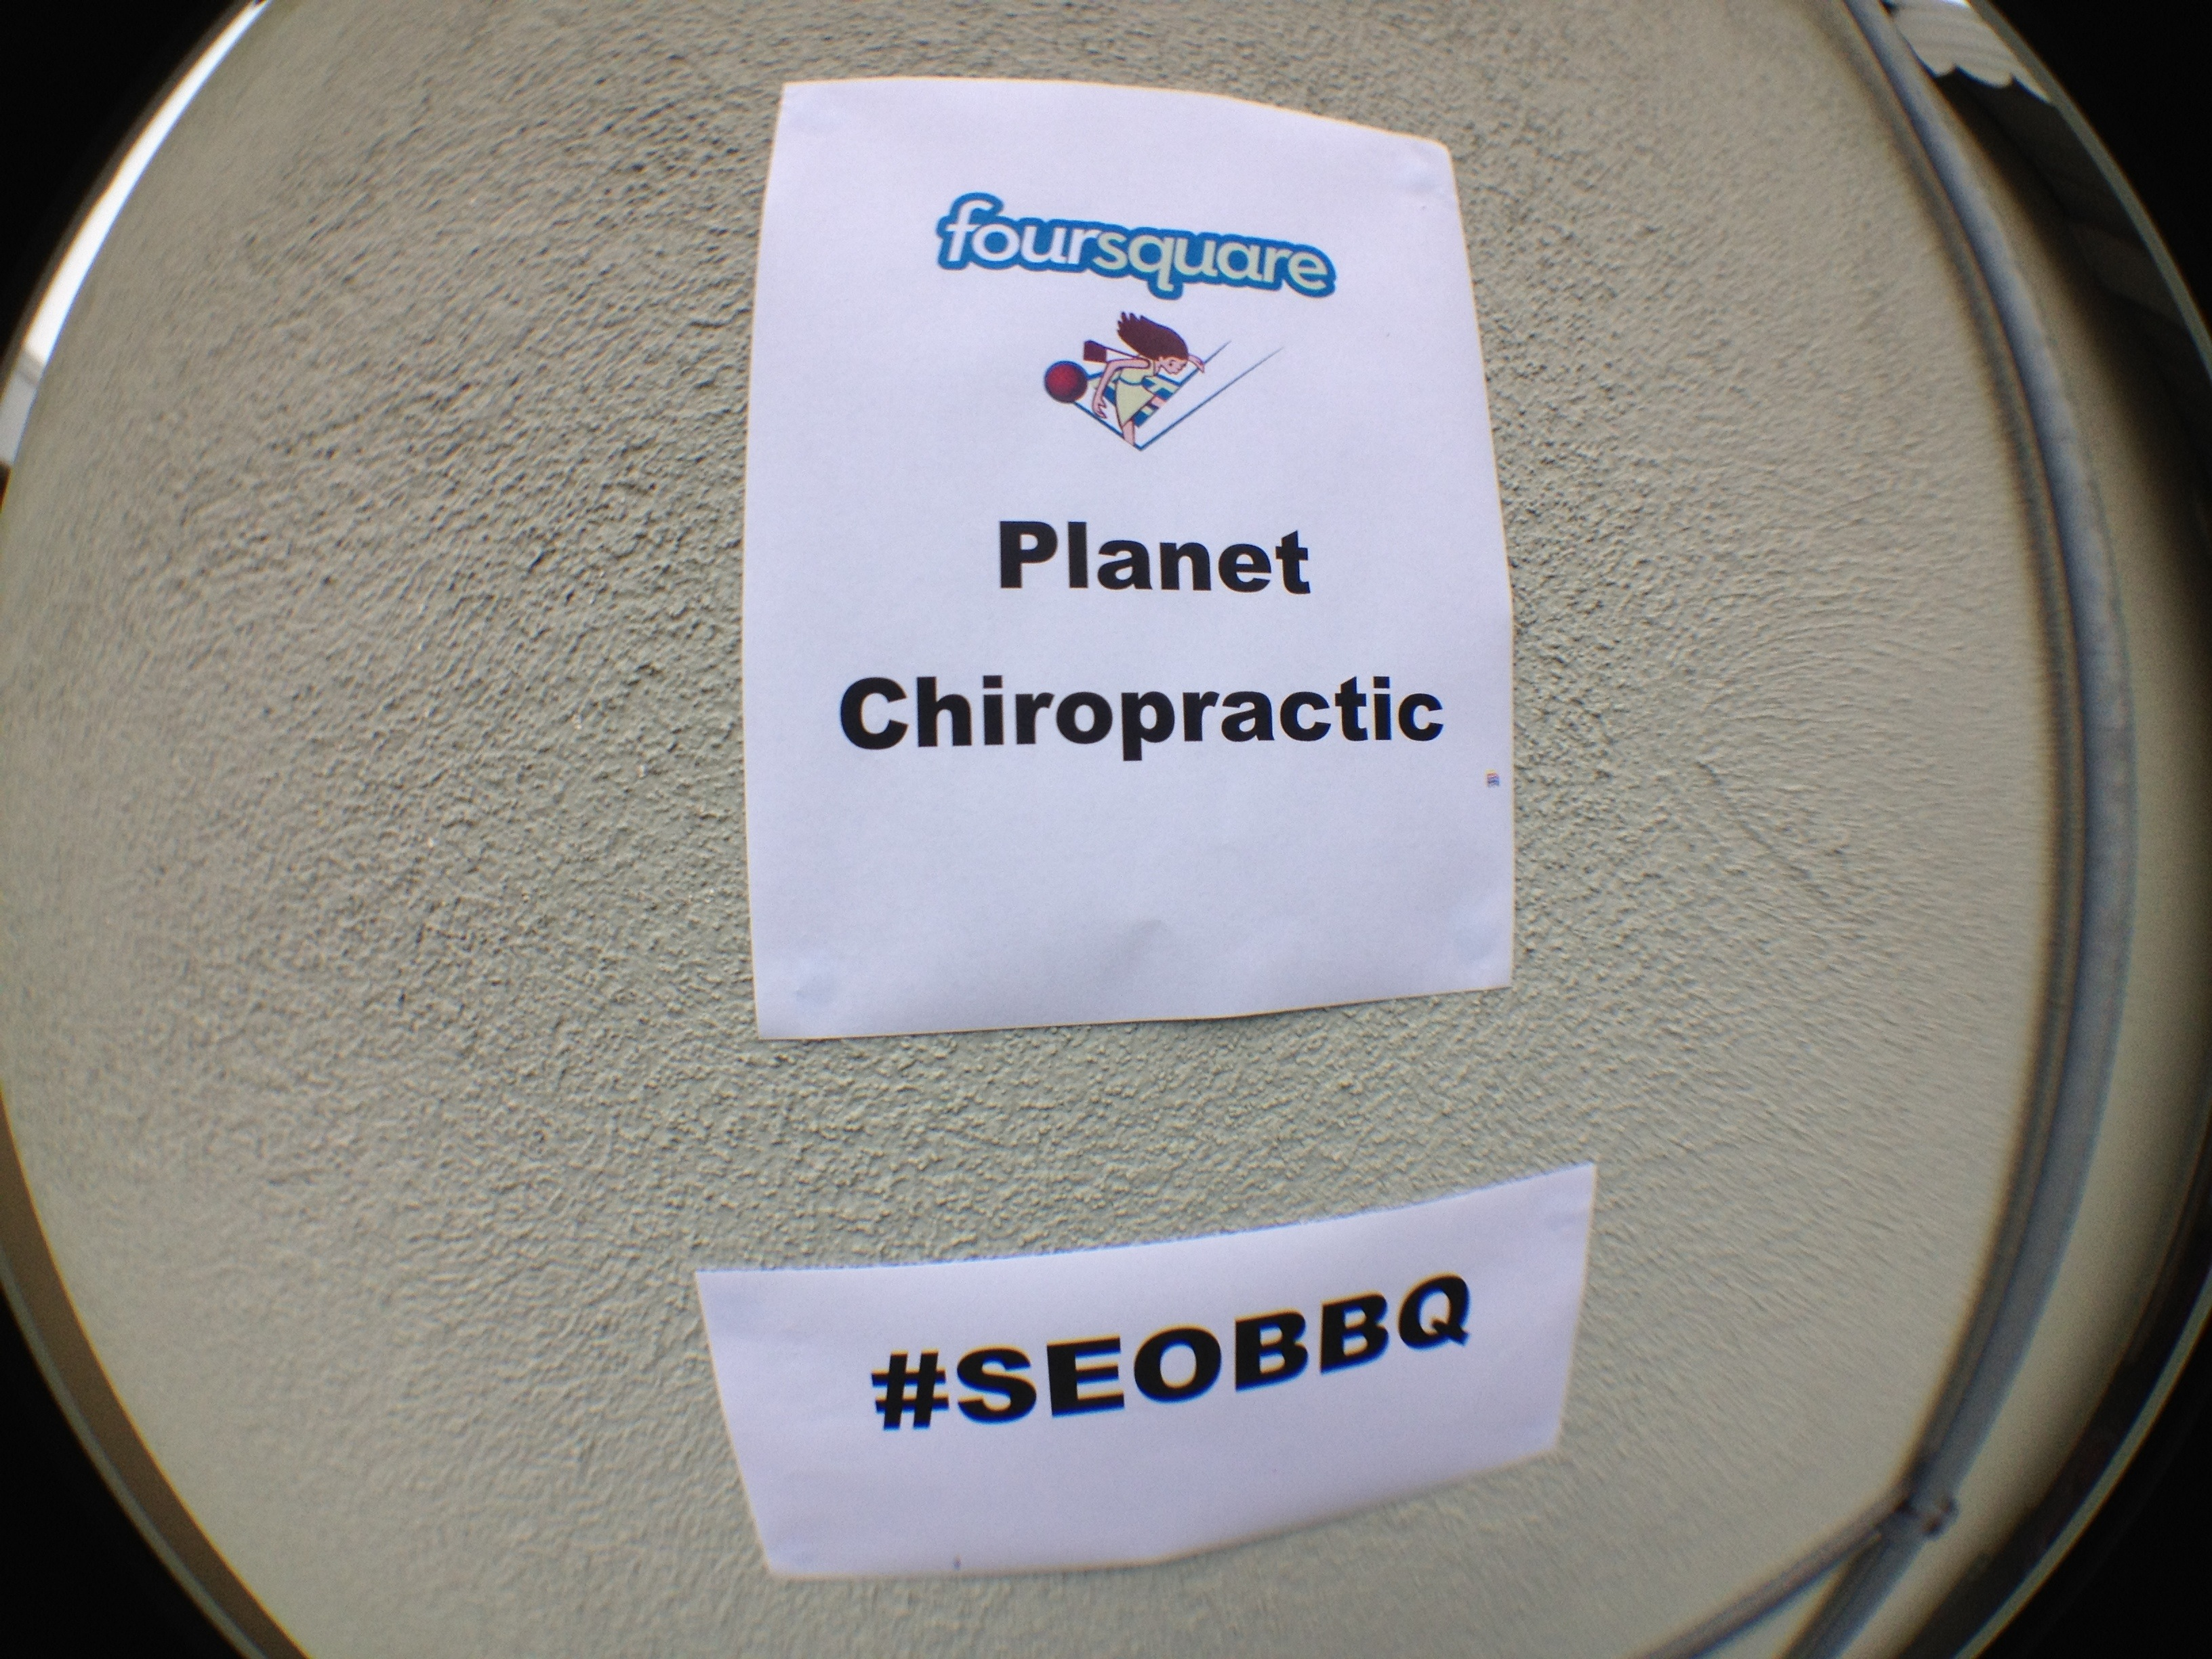 Planet Chiropractic foursquare